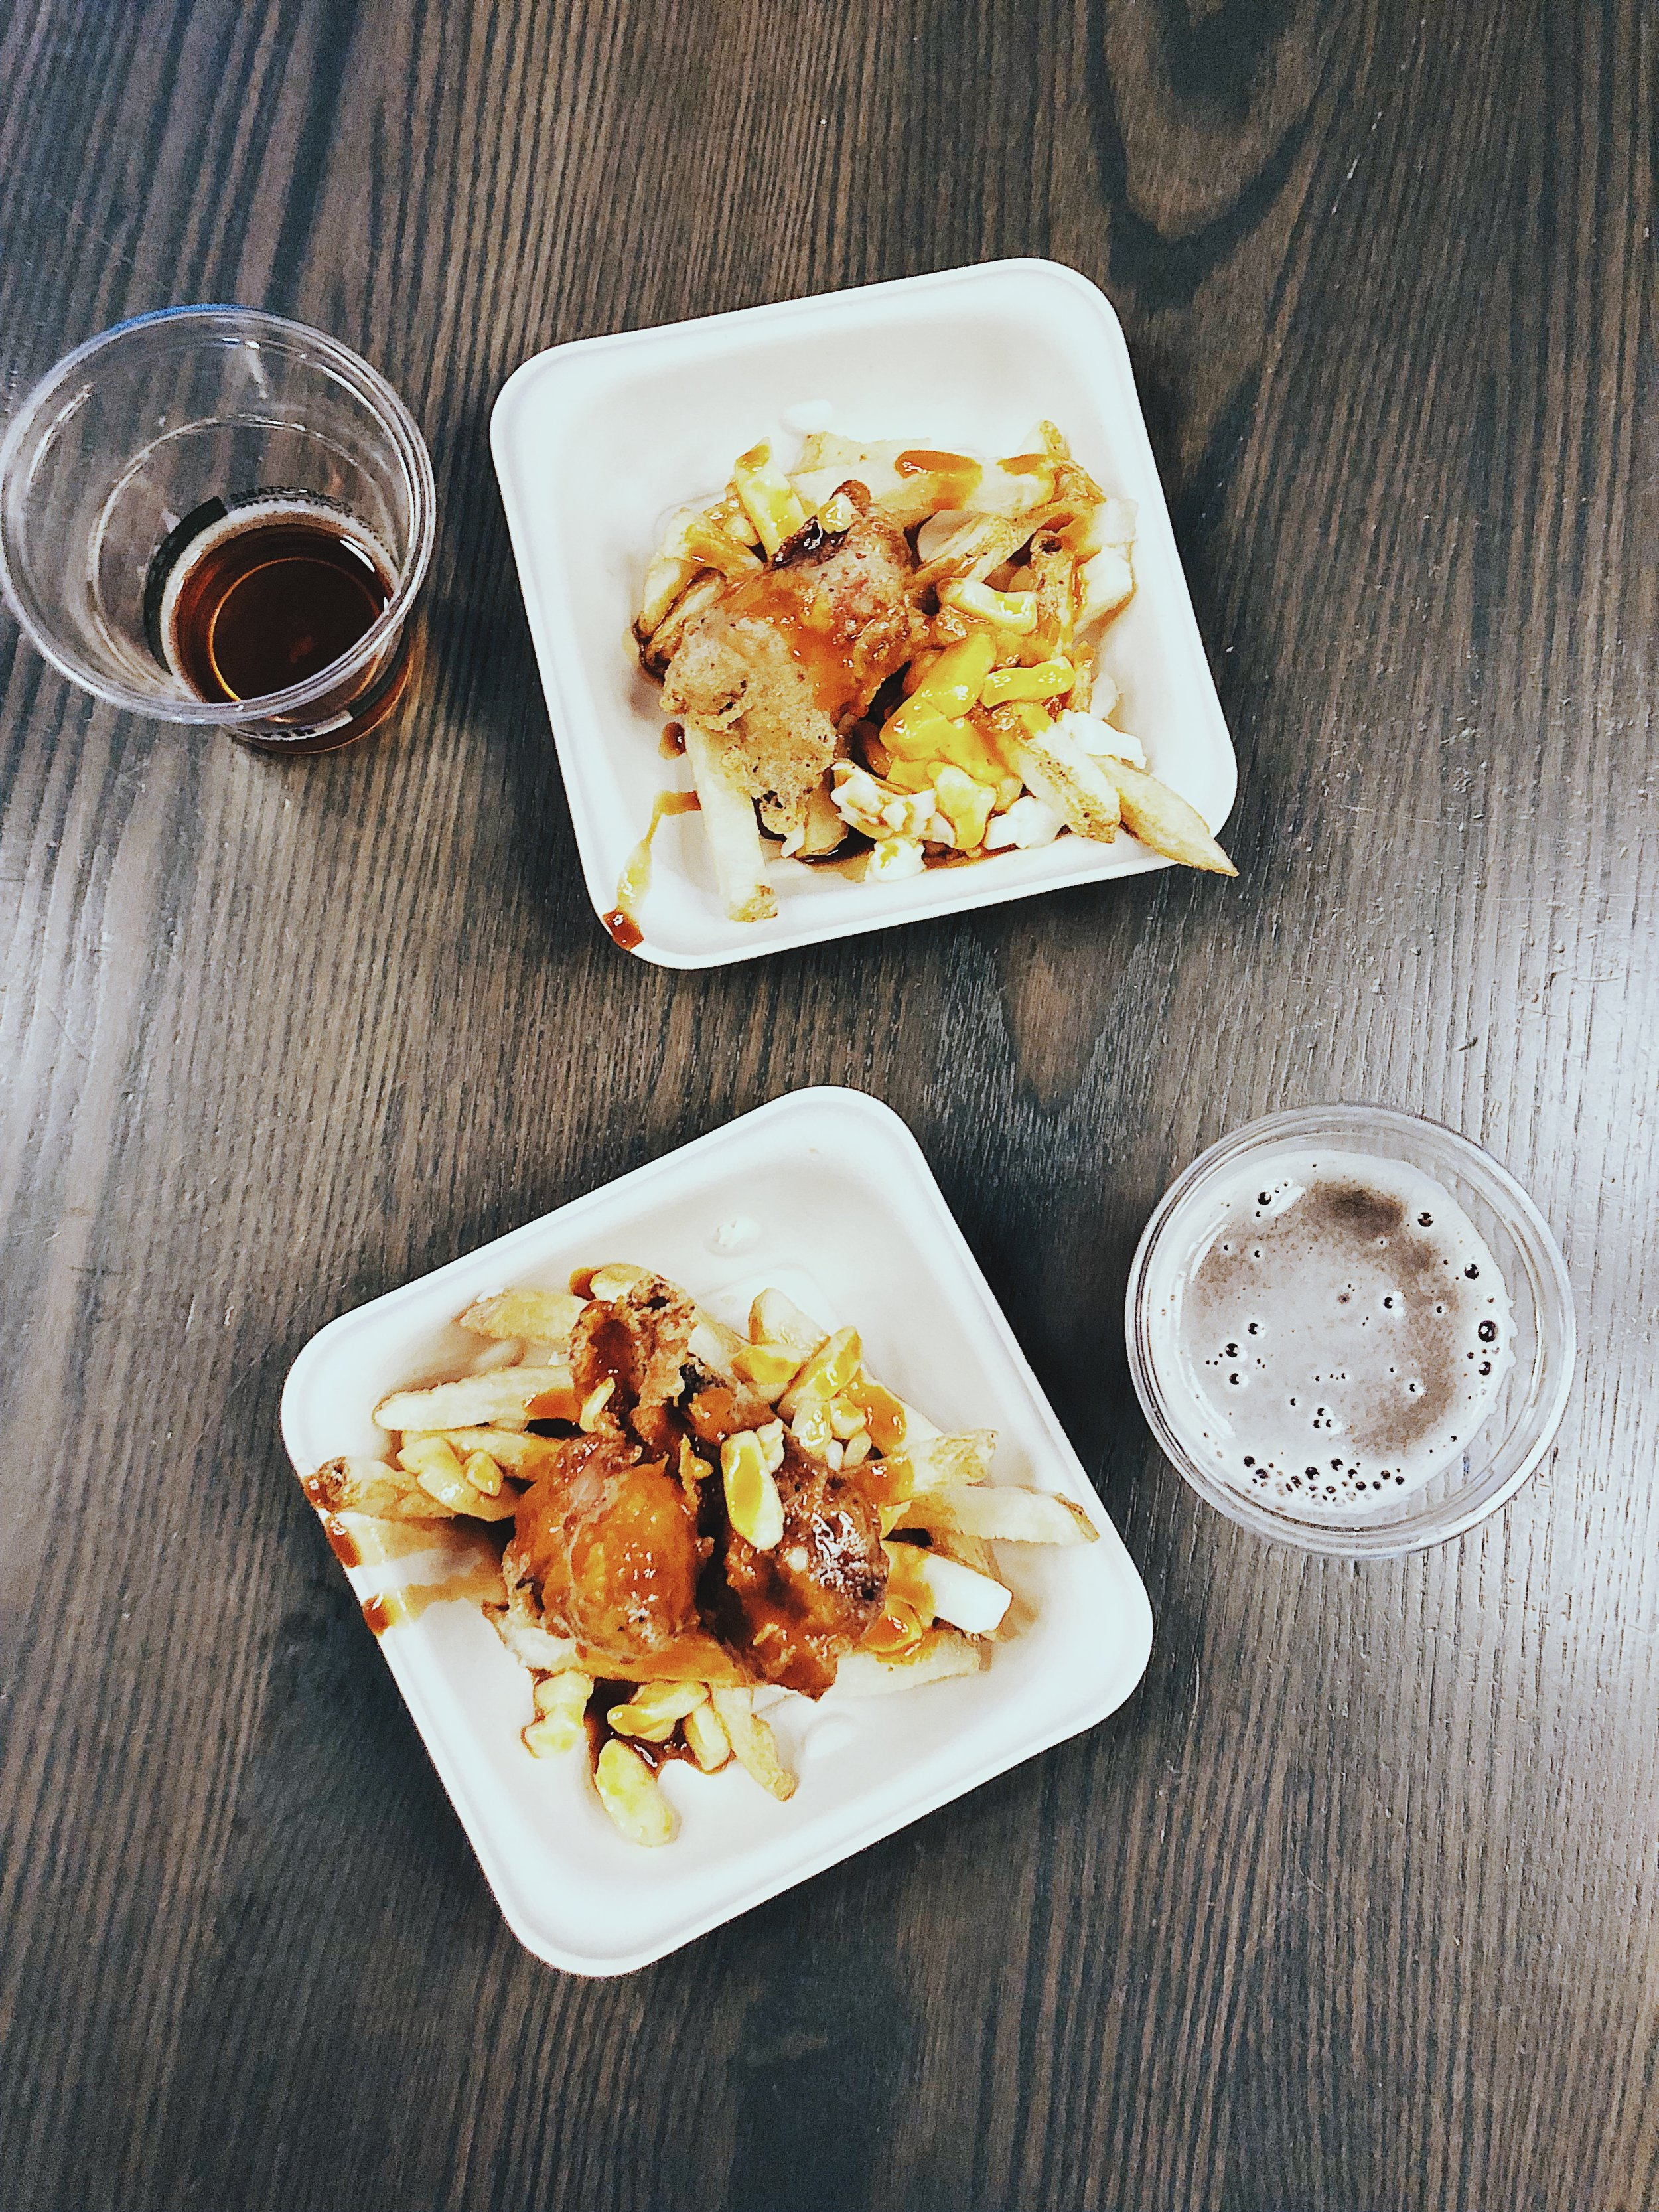 """""""If it ain't broke don't fix it"""" Poutine  -fried chicken, cheese curds, Tool Shed red Rage hot sauce, brown butter gravy"""